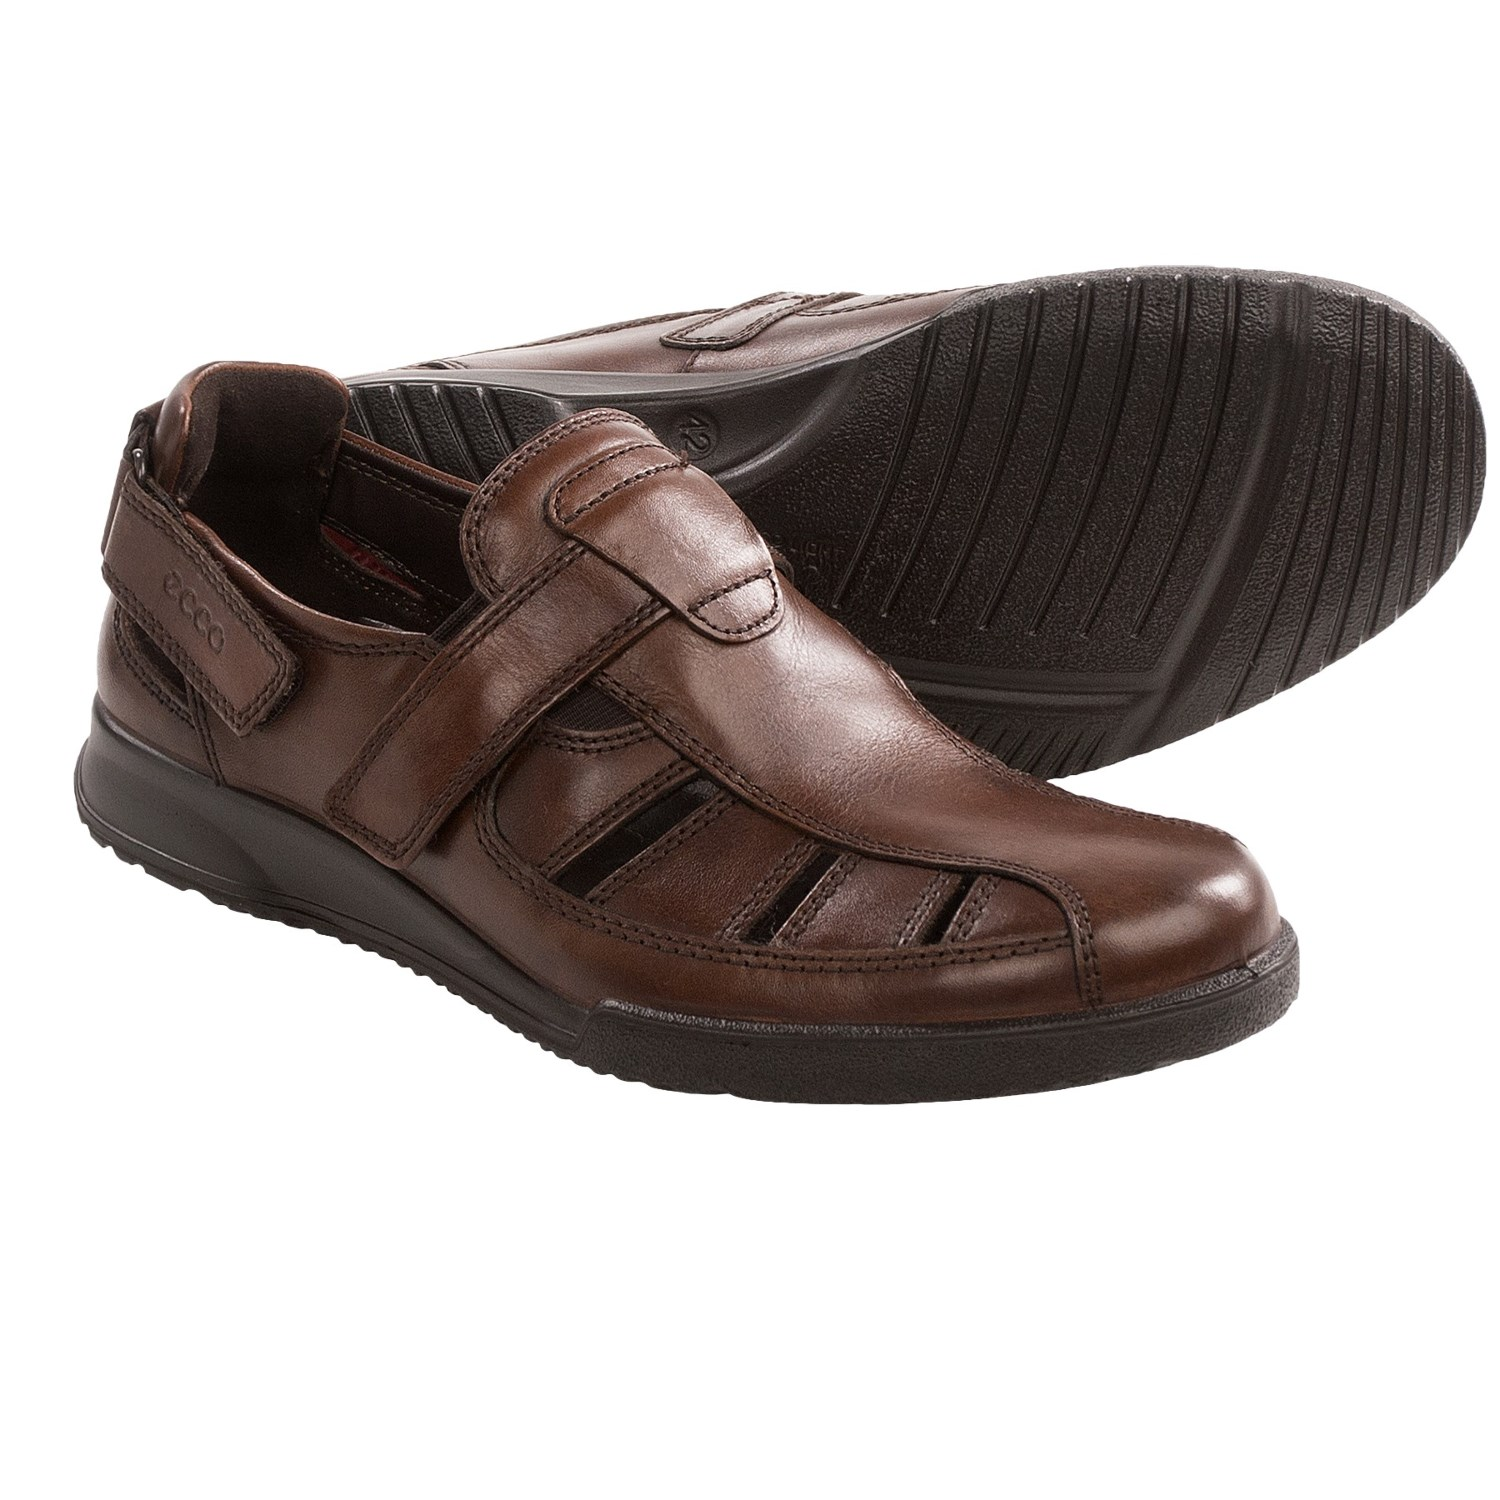 ECCO Transporter Fisherman Sandals For Men Save 25